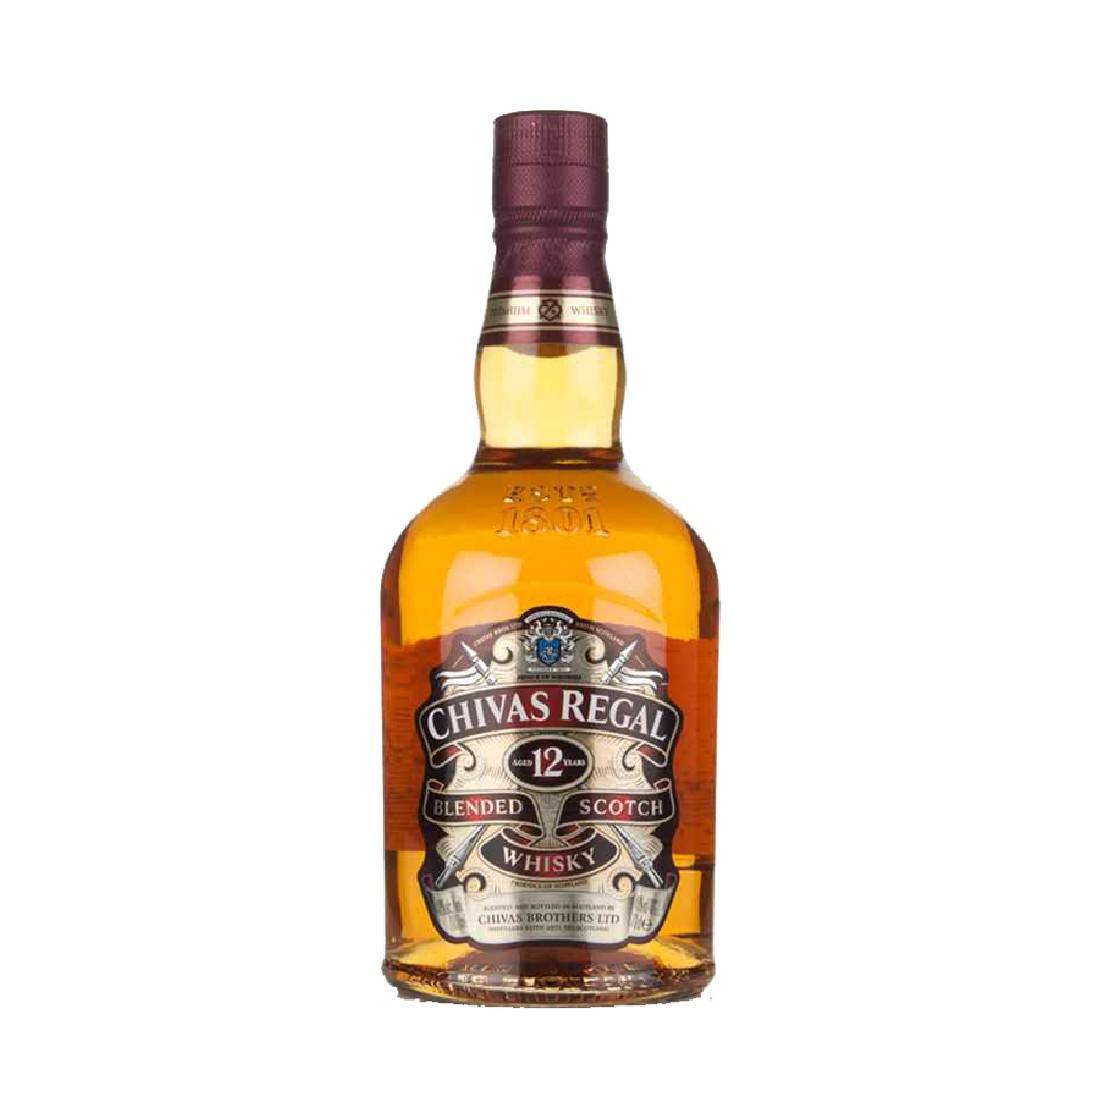 Whisky Chivas Regal 12 Anni - Chivas Regal [0.70 lt]